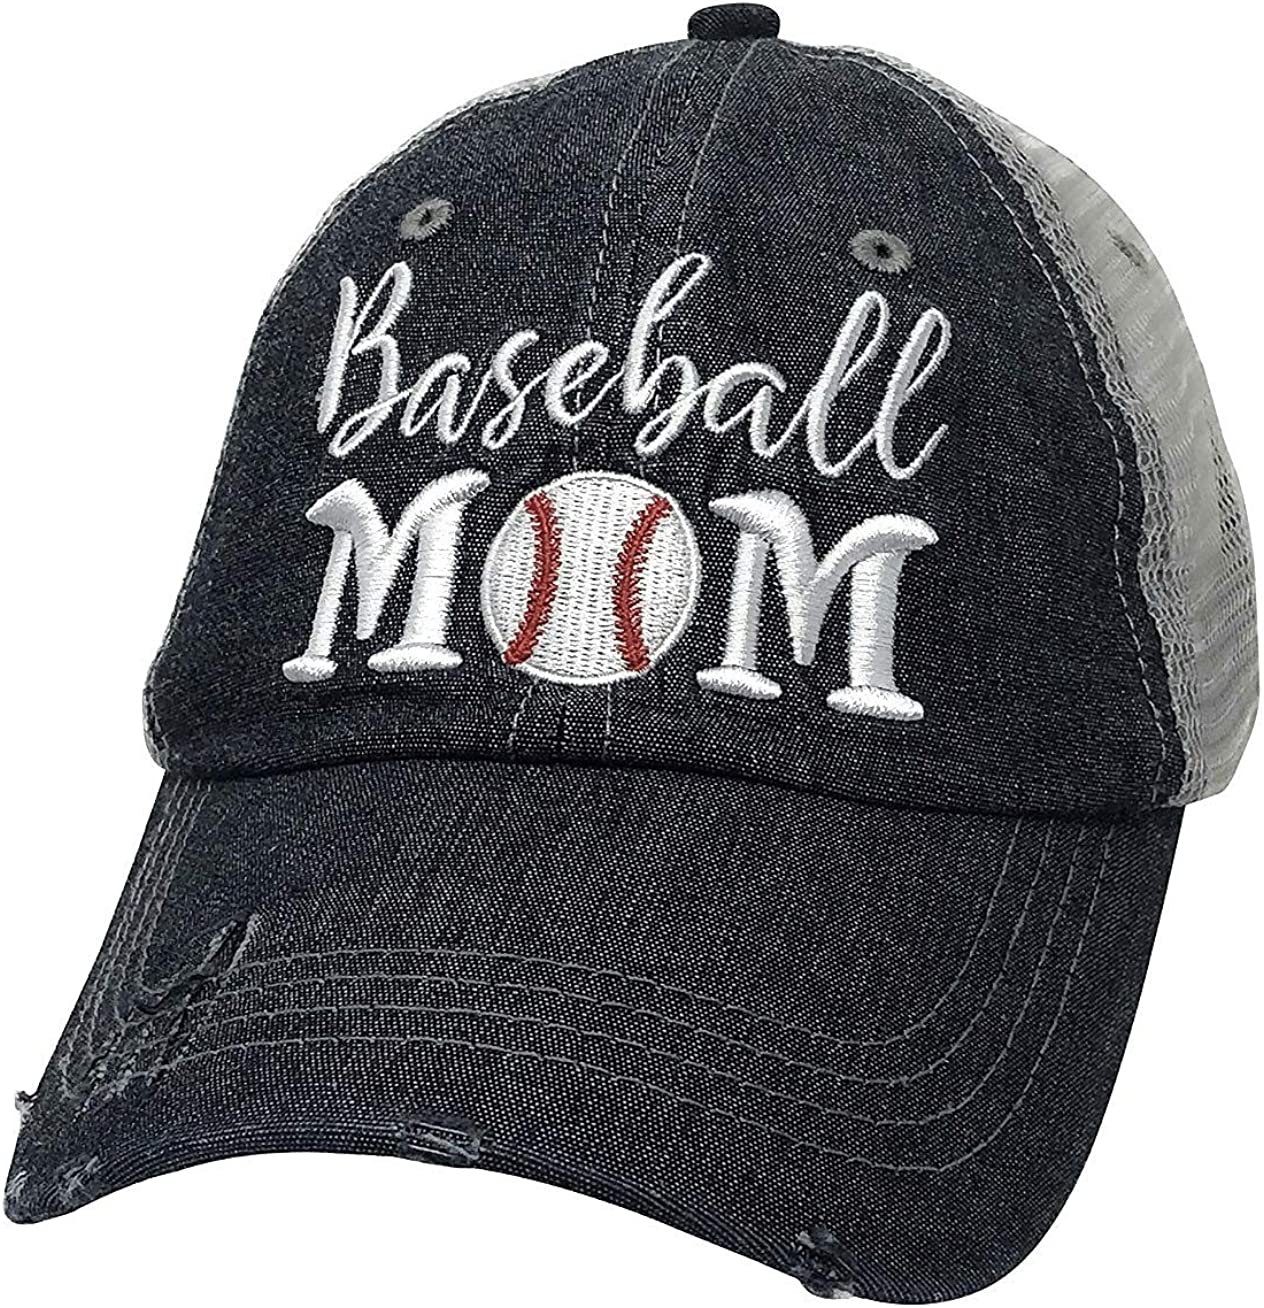 Cocomo Soul Embroidered Baseball Mom Mesh Trucker Style Hat Cap Dark Grey